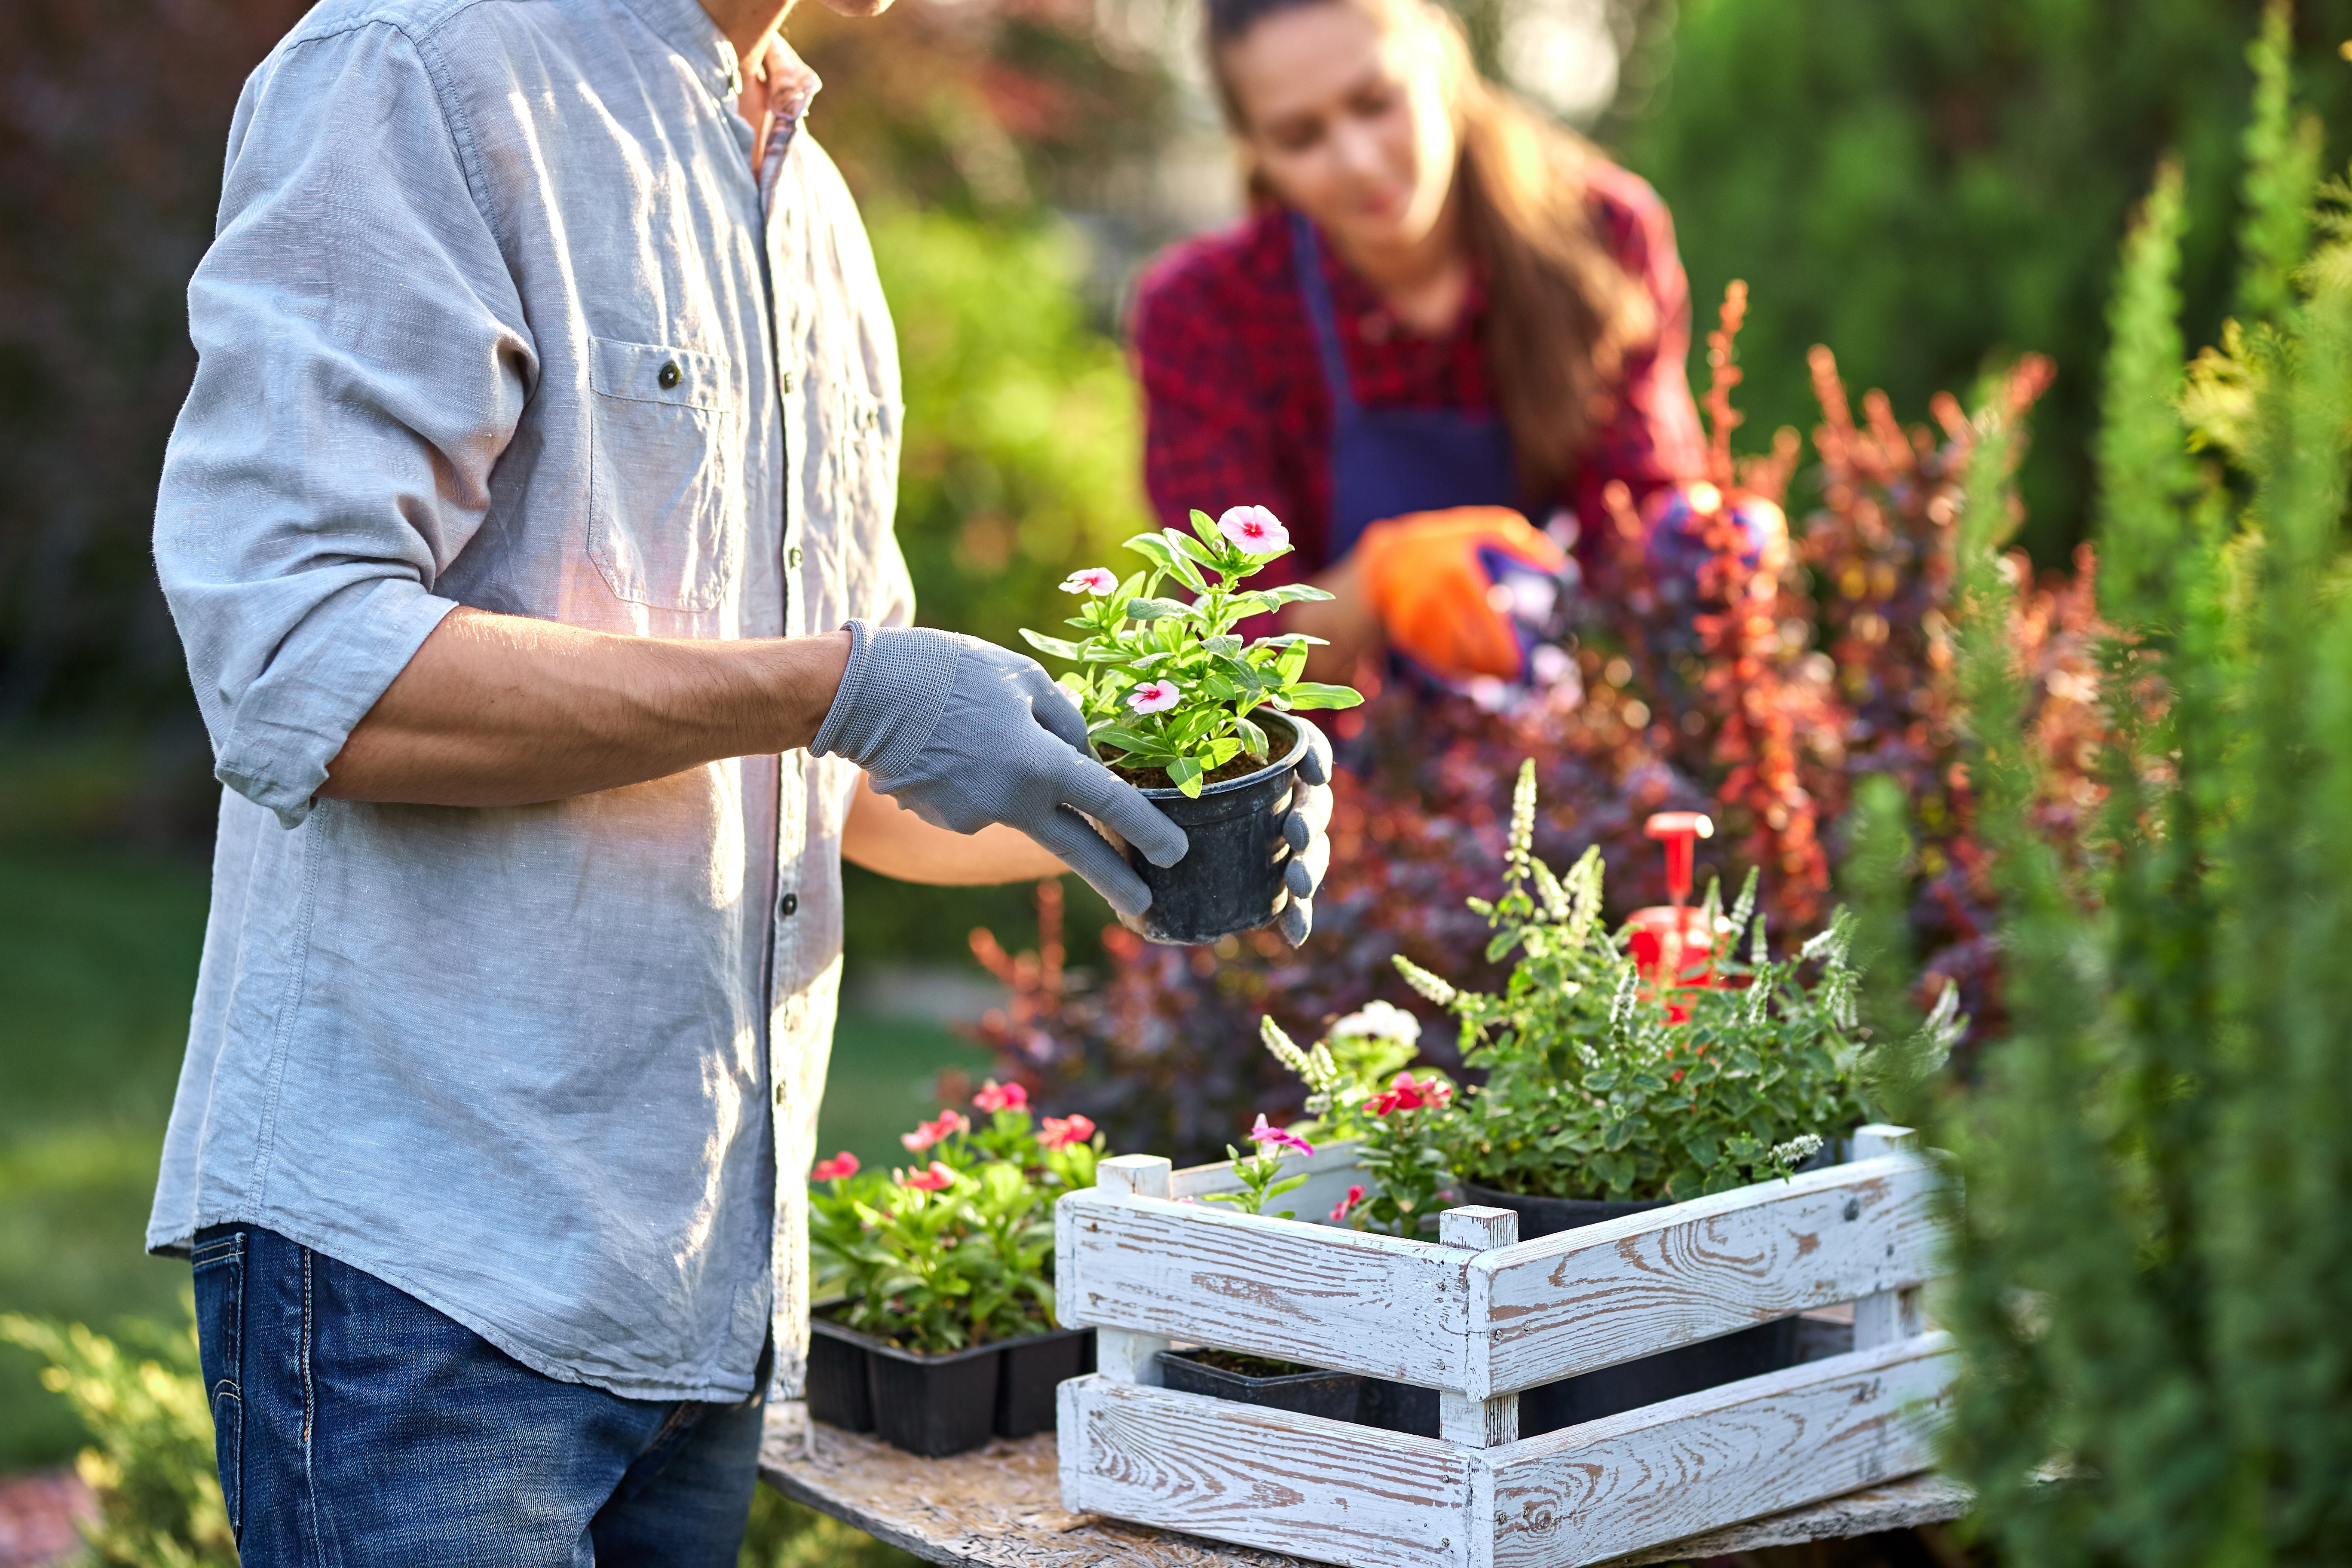 Guy gardener in garden gloves puts the pots with seedlings in the white wooden box on the table and a girl prunes plants in the wonderful nursery-garden on a sunny day. .